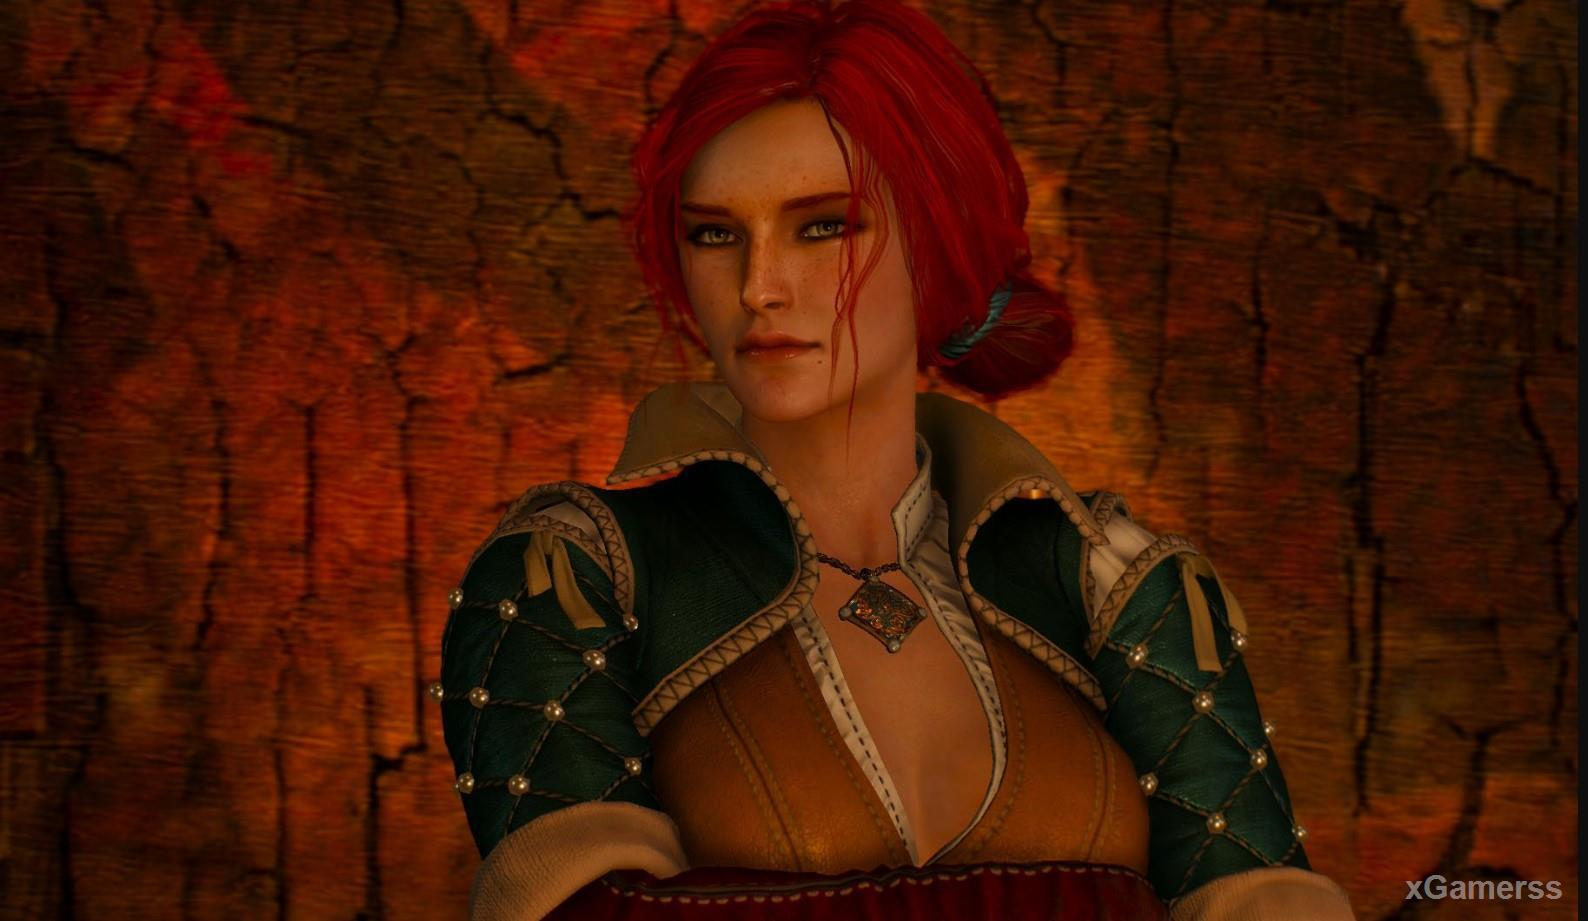 Beautiful red-haired sorceress Triss